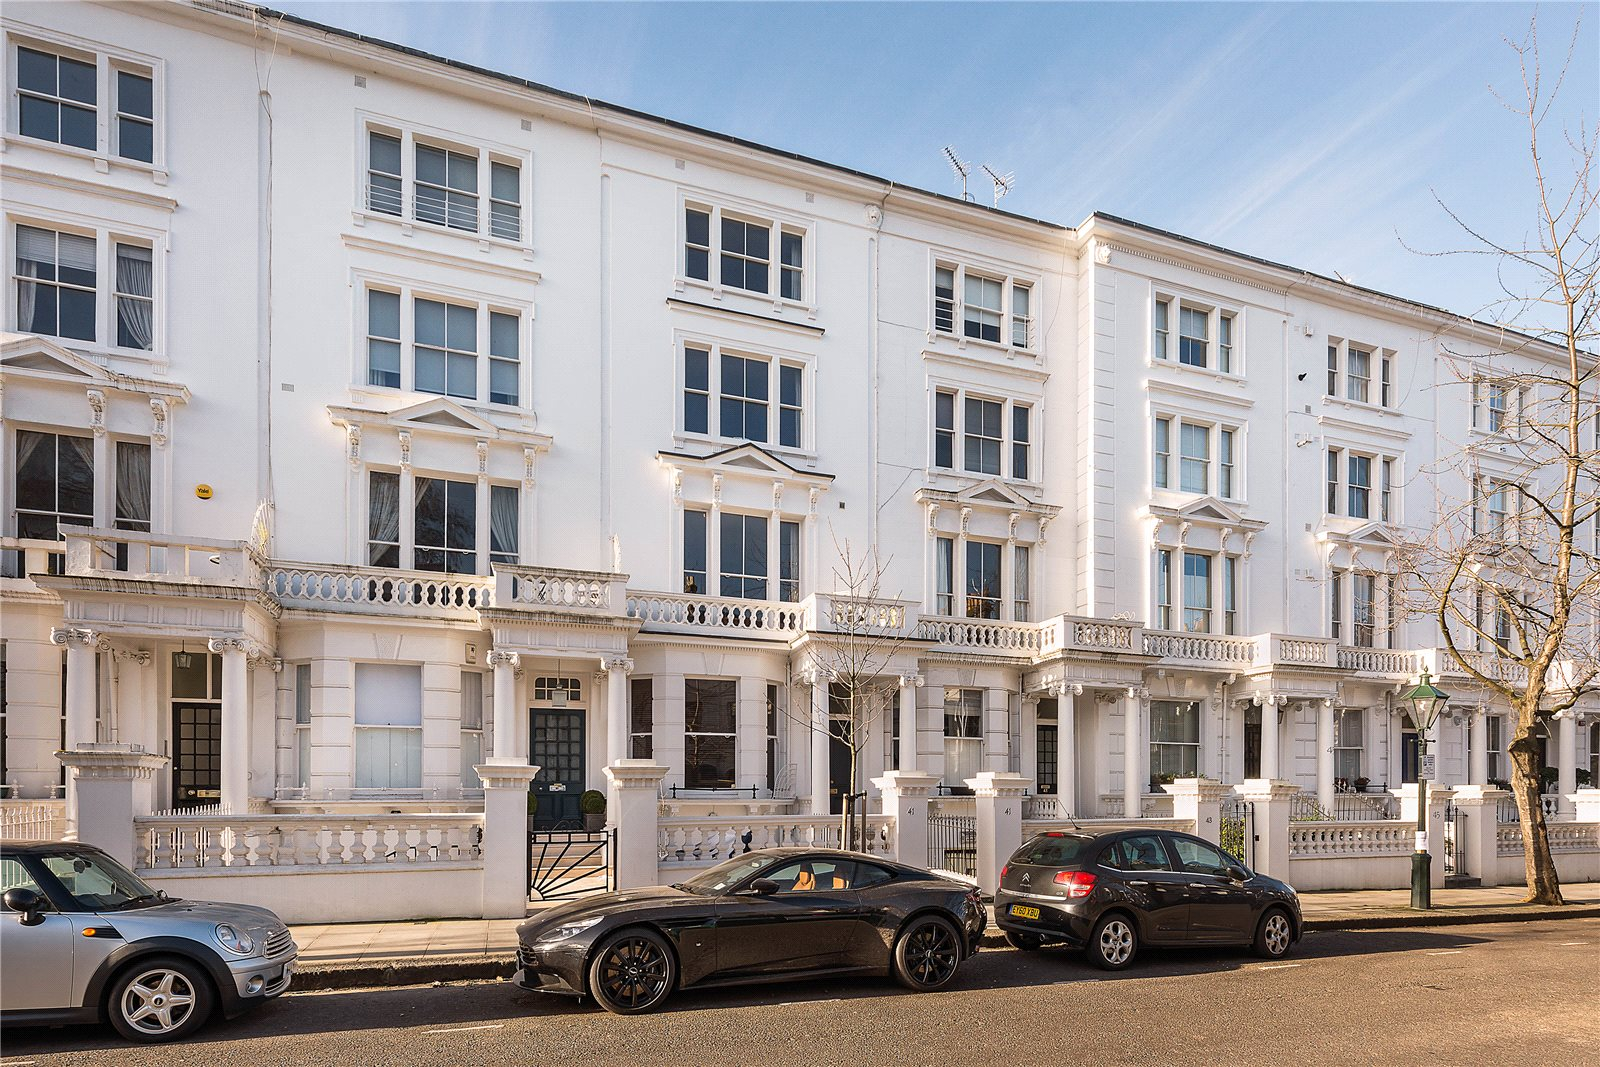 集合住宅 のために 売買 アット Palace Gardens Terrace, Kensington, London, W8 Kensington, London, イギリス